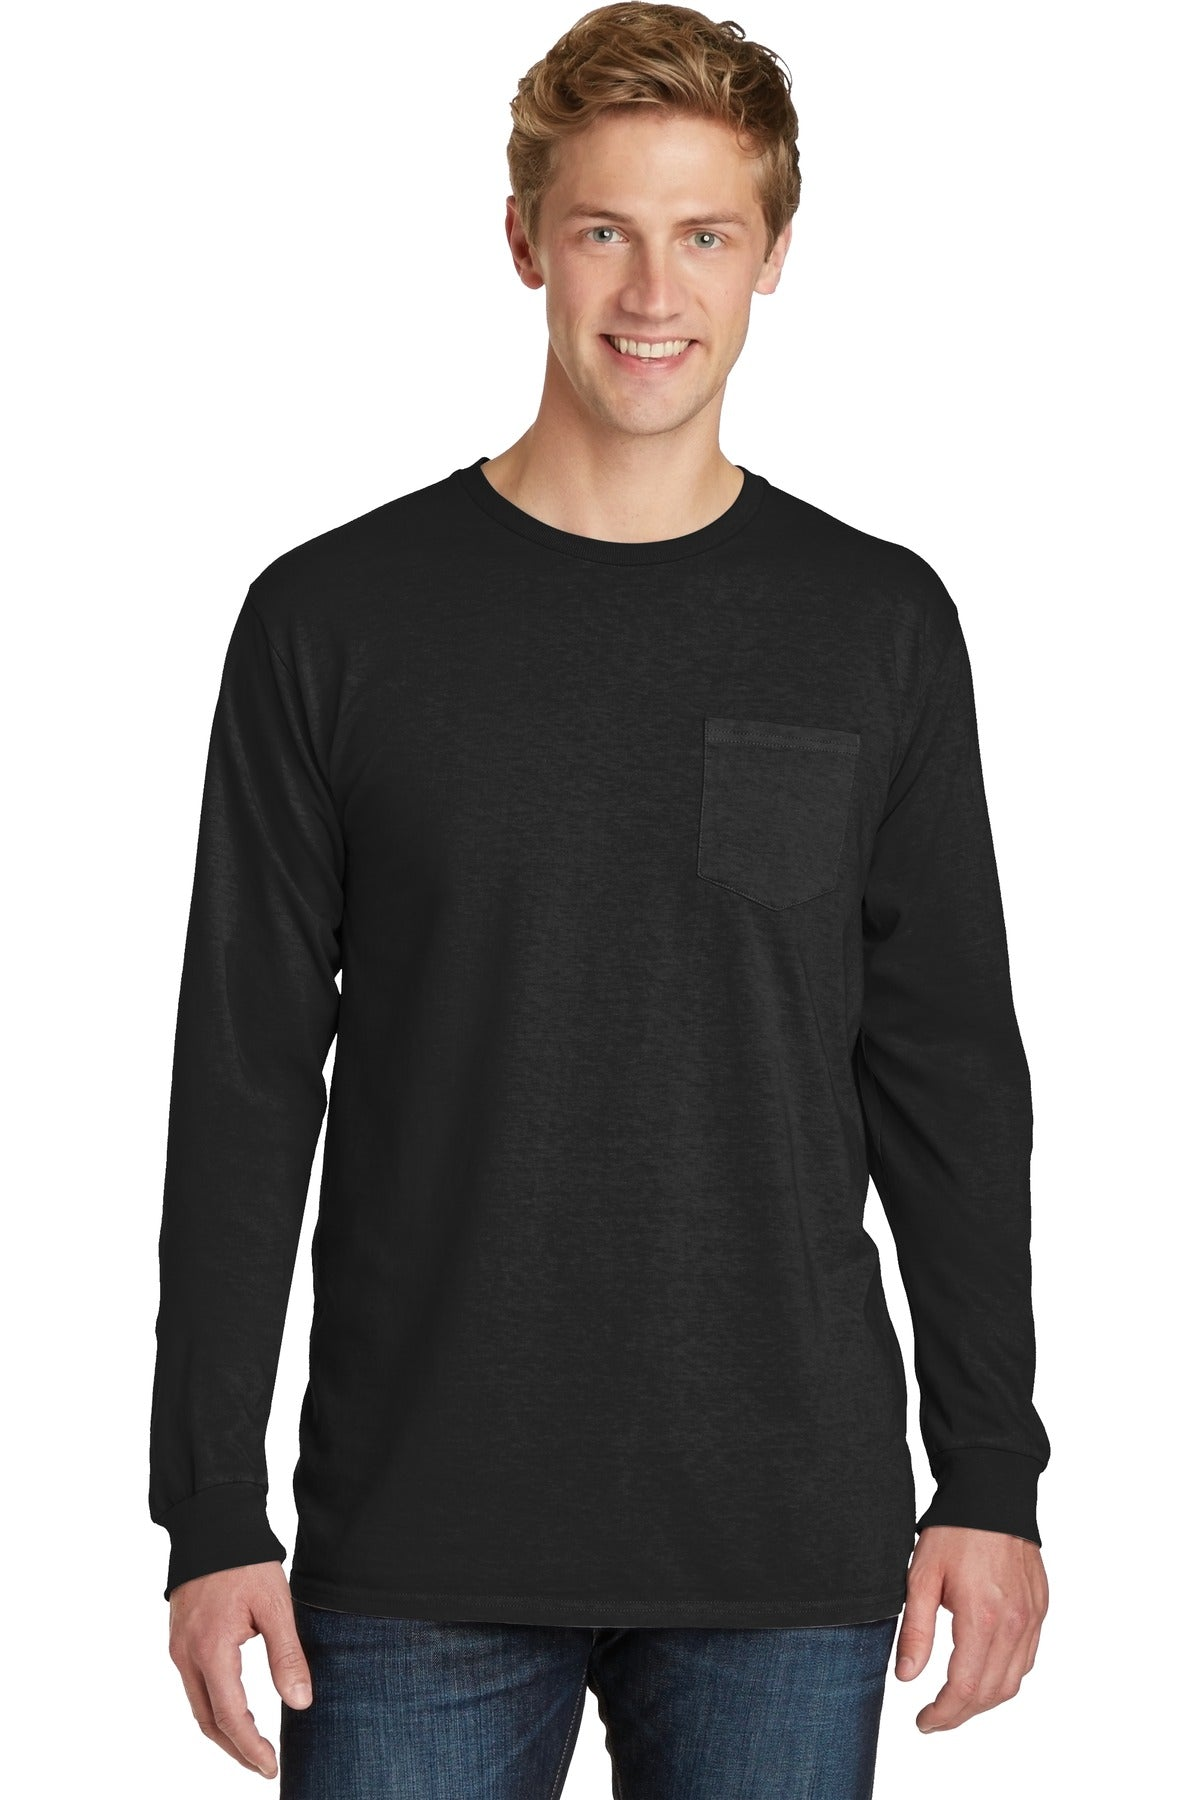 Port & Company PC099LSP Beach Wash Garment-Dyed Long Sleeve Pocket Tee - Black - HIT A Double